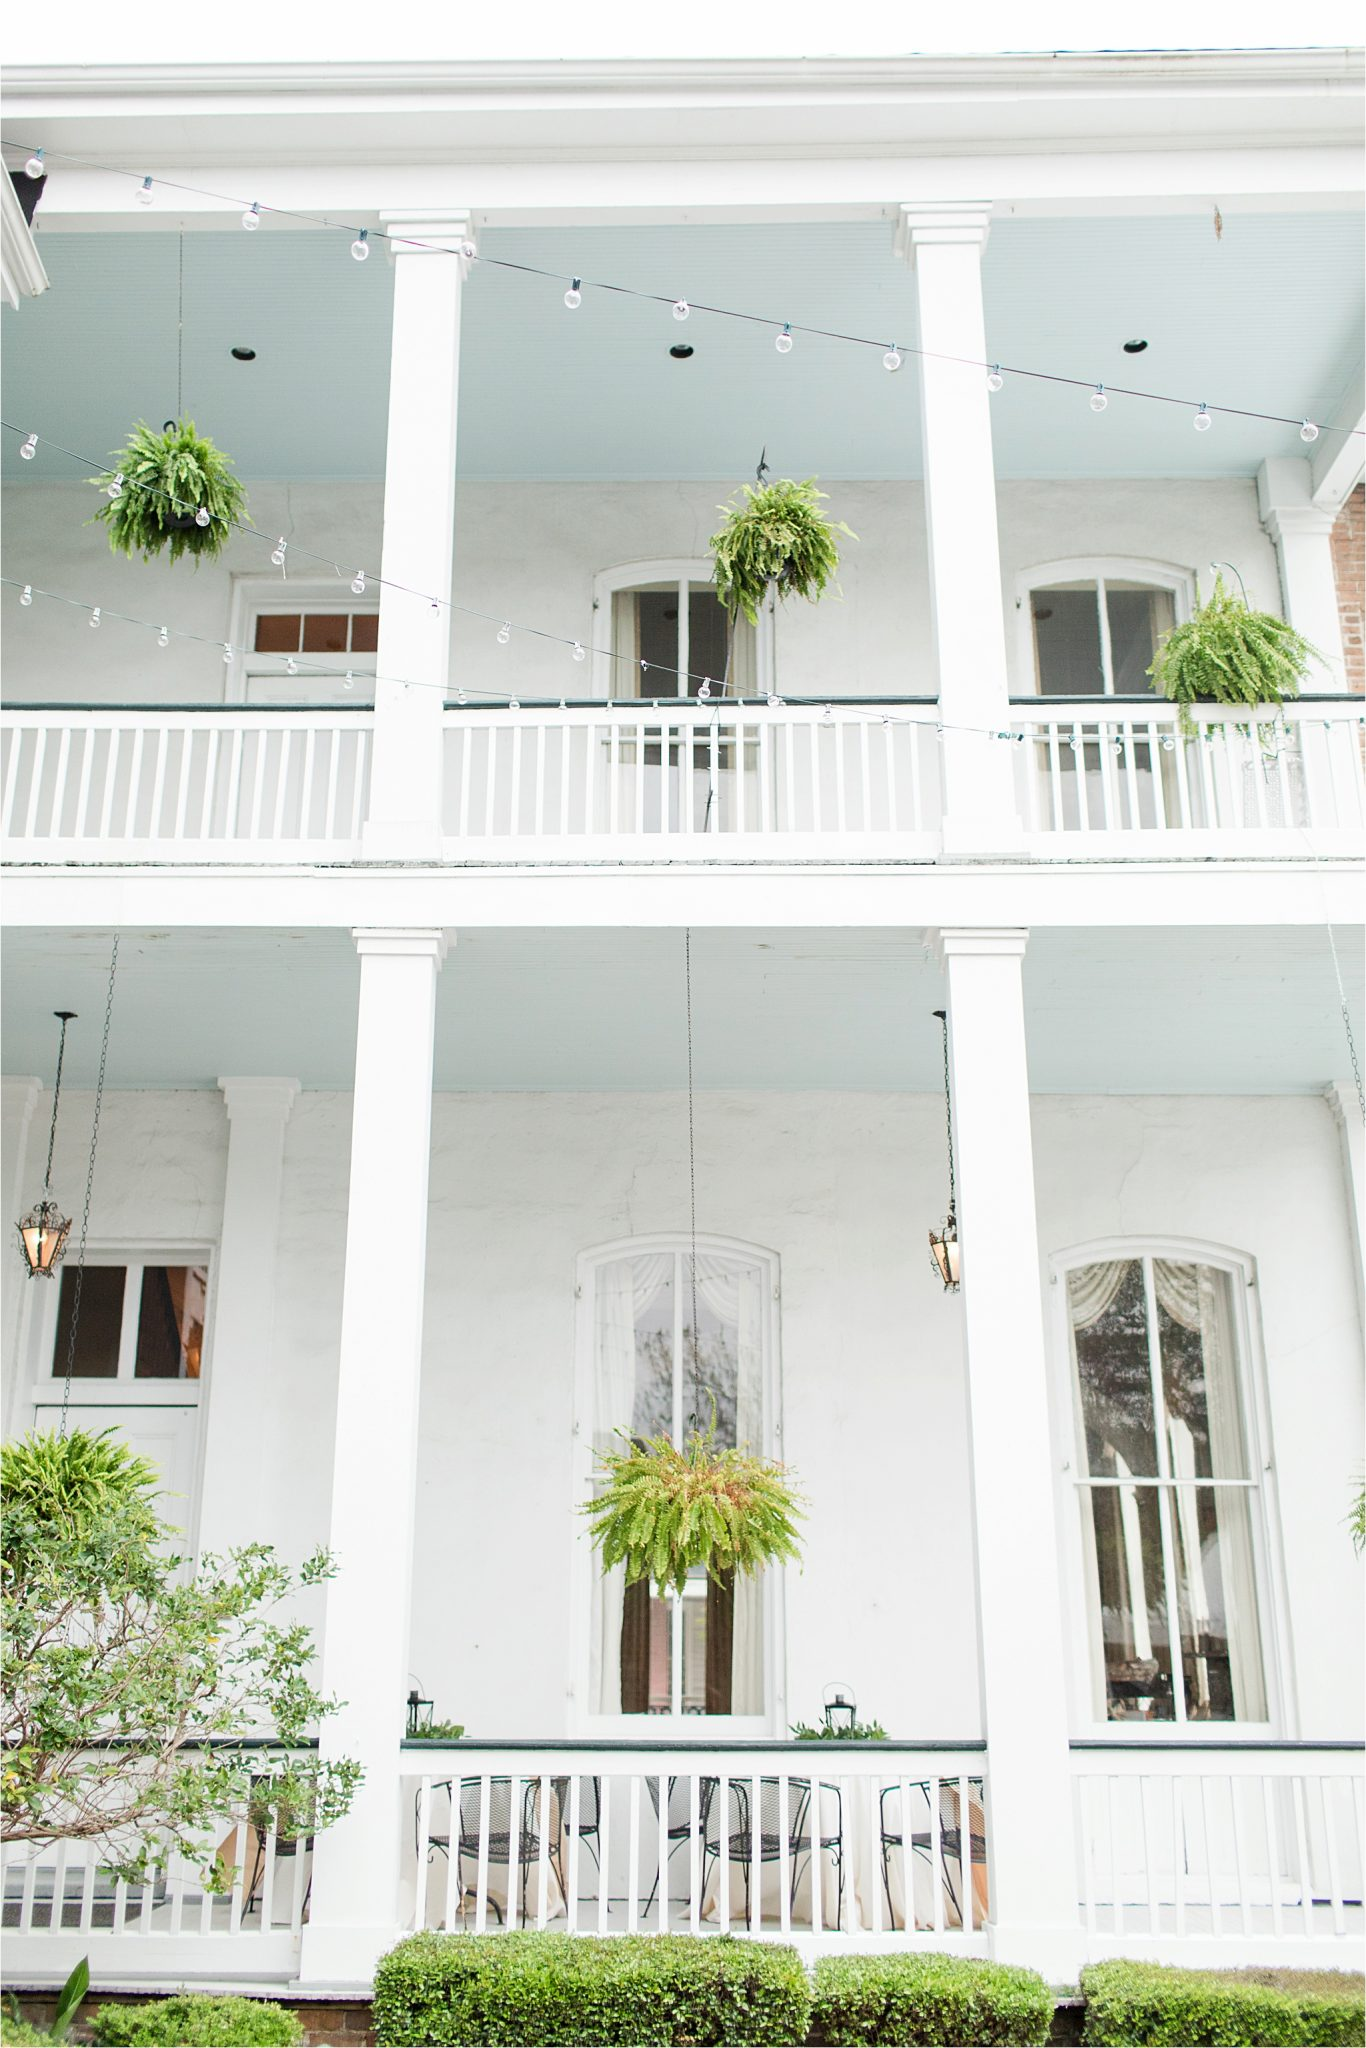 ezell house historic downtown mobile-alabama-wedding venue-drapping lights